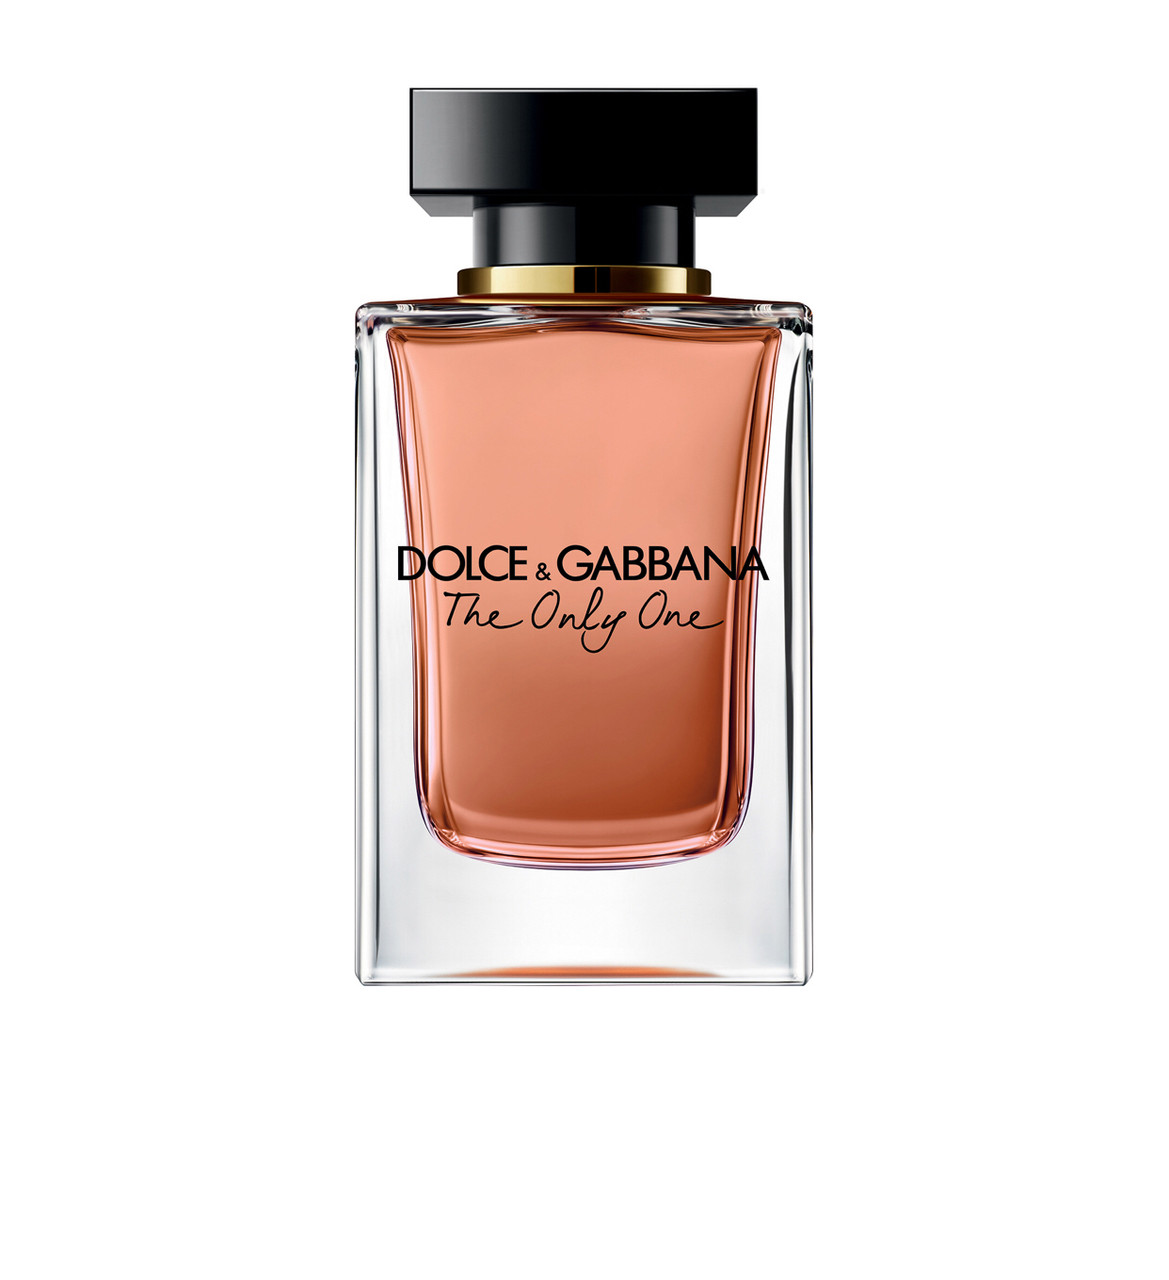 Dolce & Gabbana The only one 50ml